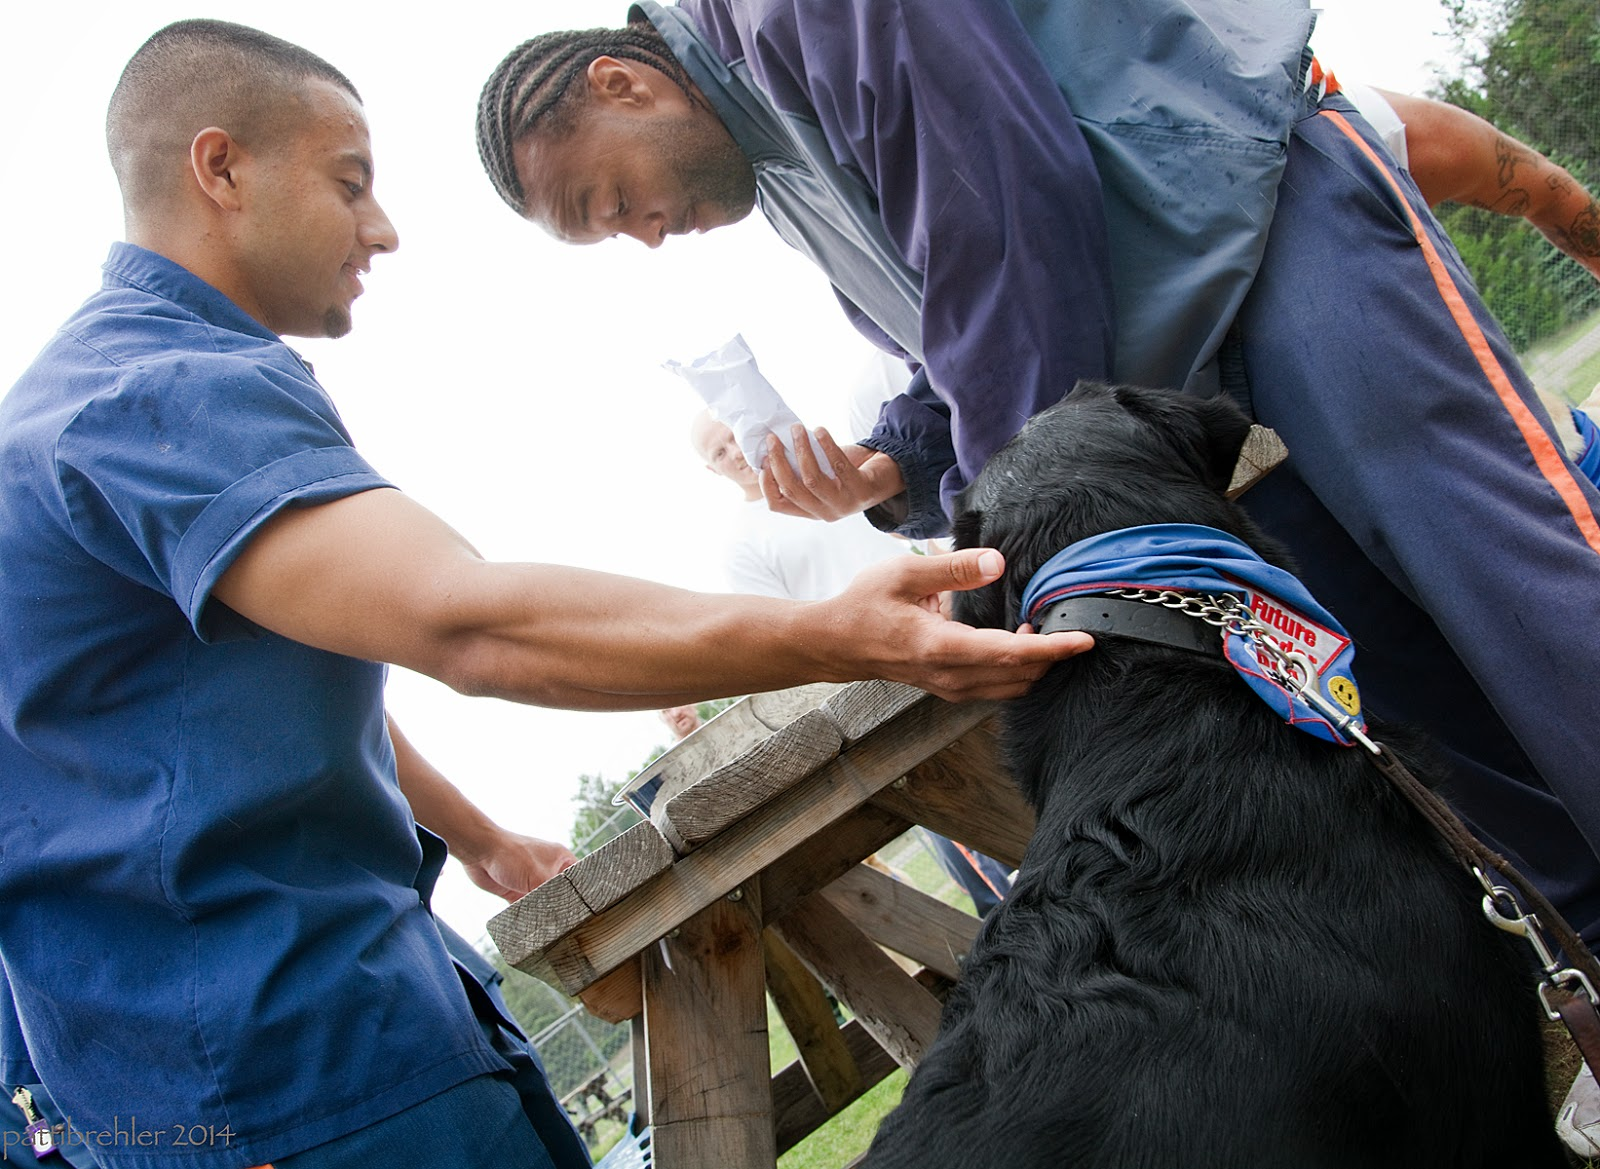 The photo is taken from a low position looking up at two men and a black lab around a wood picnic table. Both men are wearing the blue prison uniforms. The man on the left is reaching to the puppy's collar with his right hand. The man on the right is African American and is leaning ove rthe table with an envelop in his right hand.